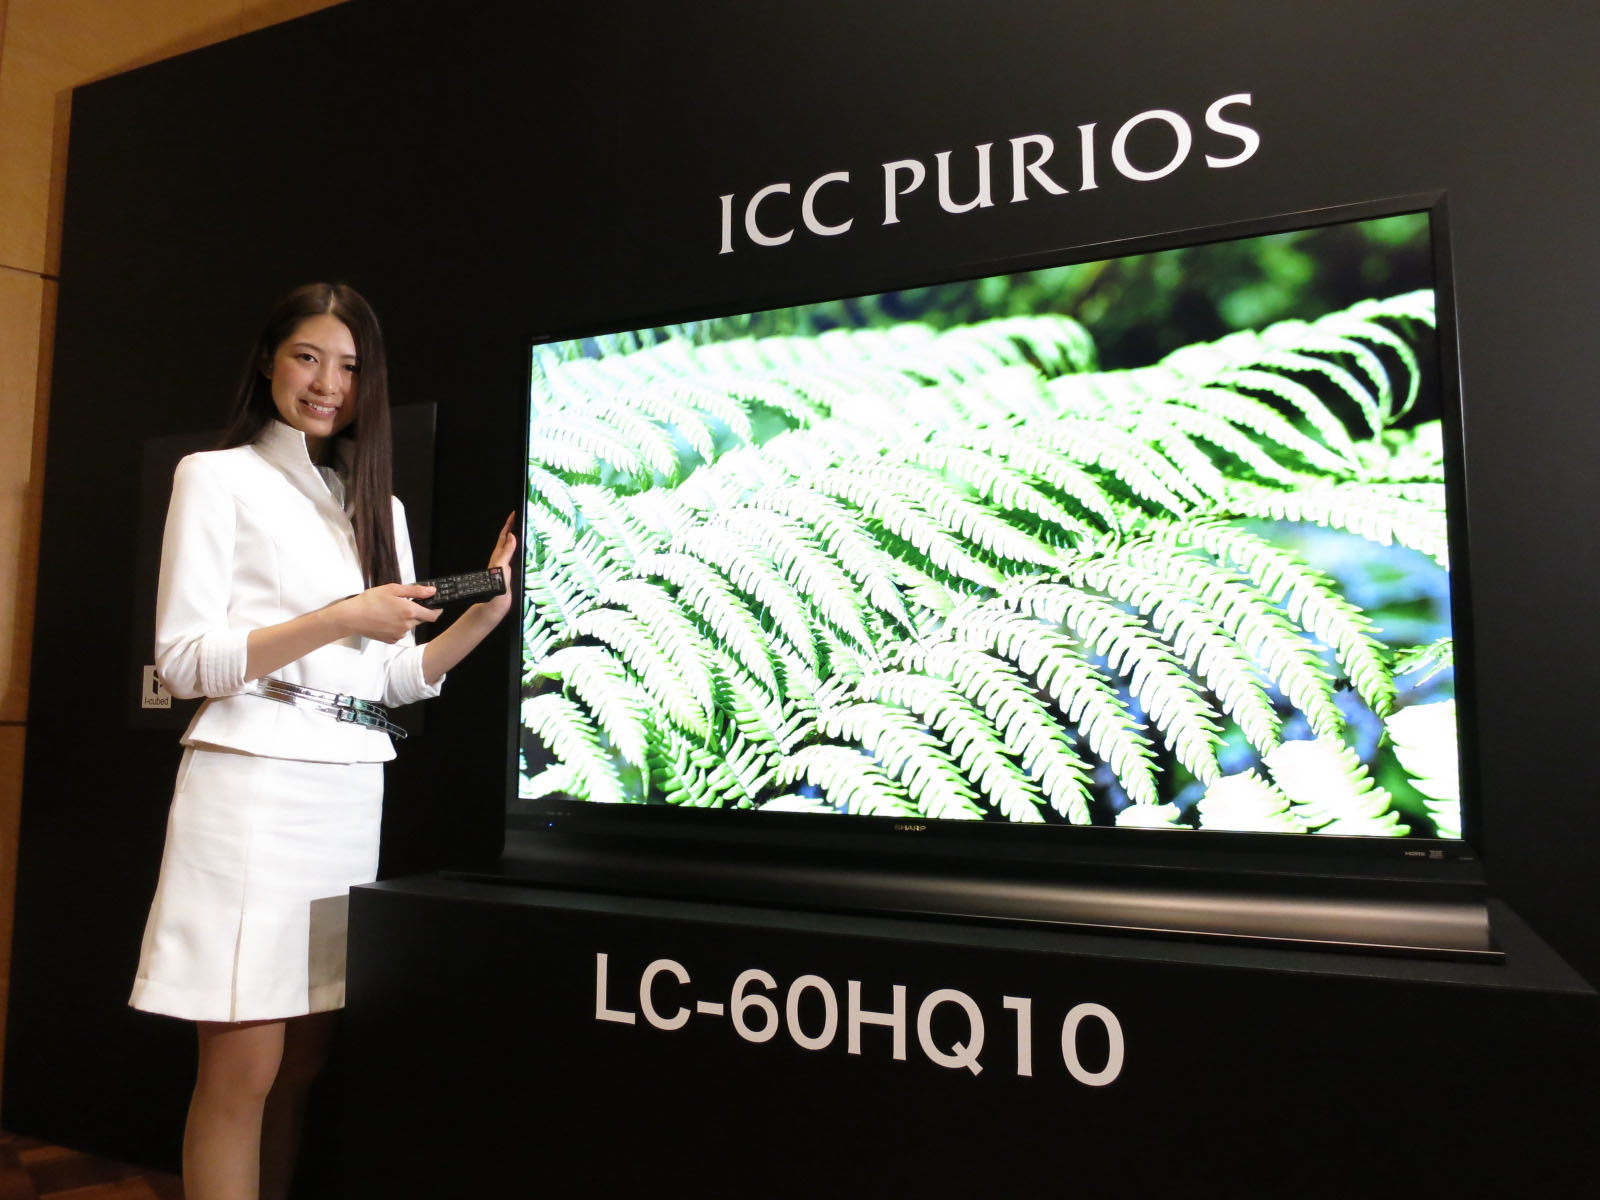 Latest and greatest: A model shows off Sharp Corp.'s 60-inch ICC Purios TV Thursday in Minato Ward, Tokyo. | KAZUAKI NAGATA